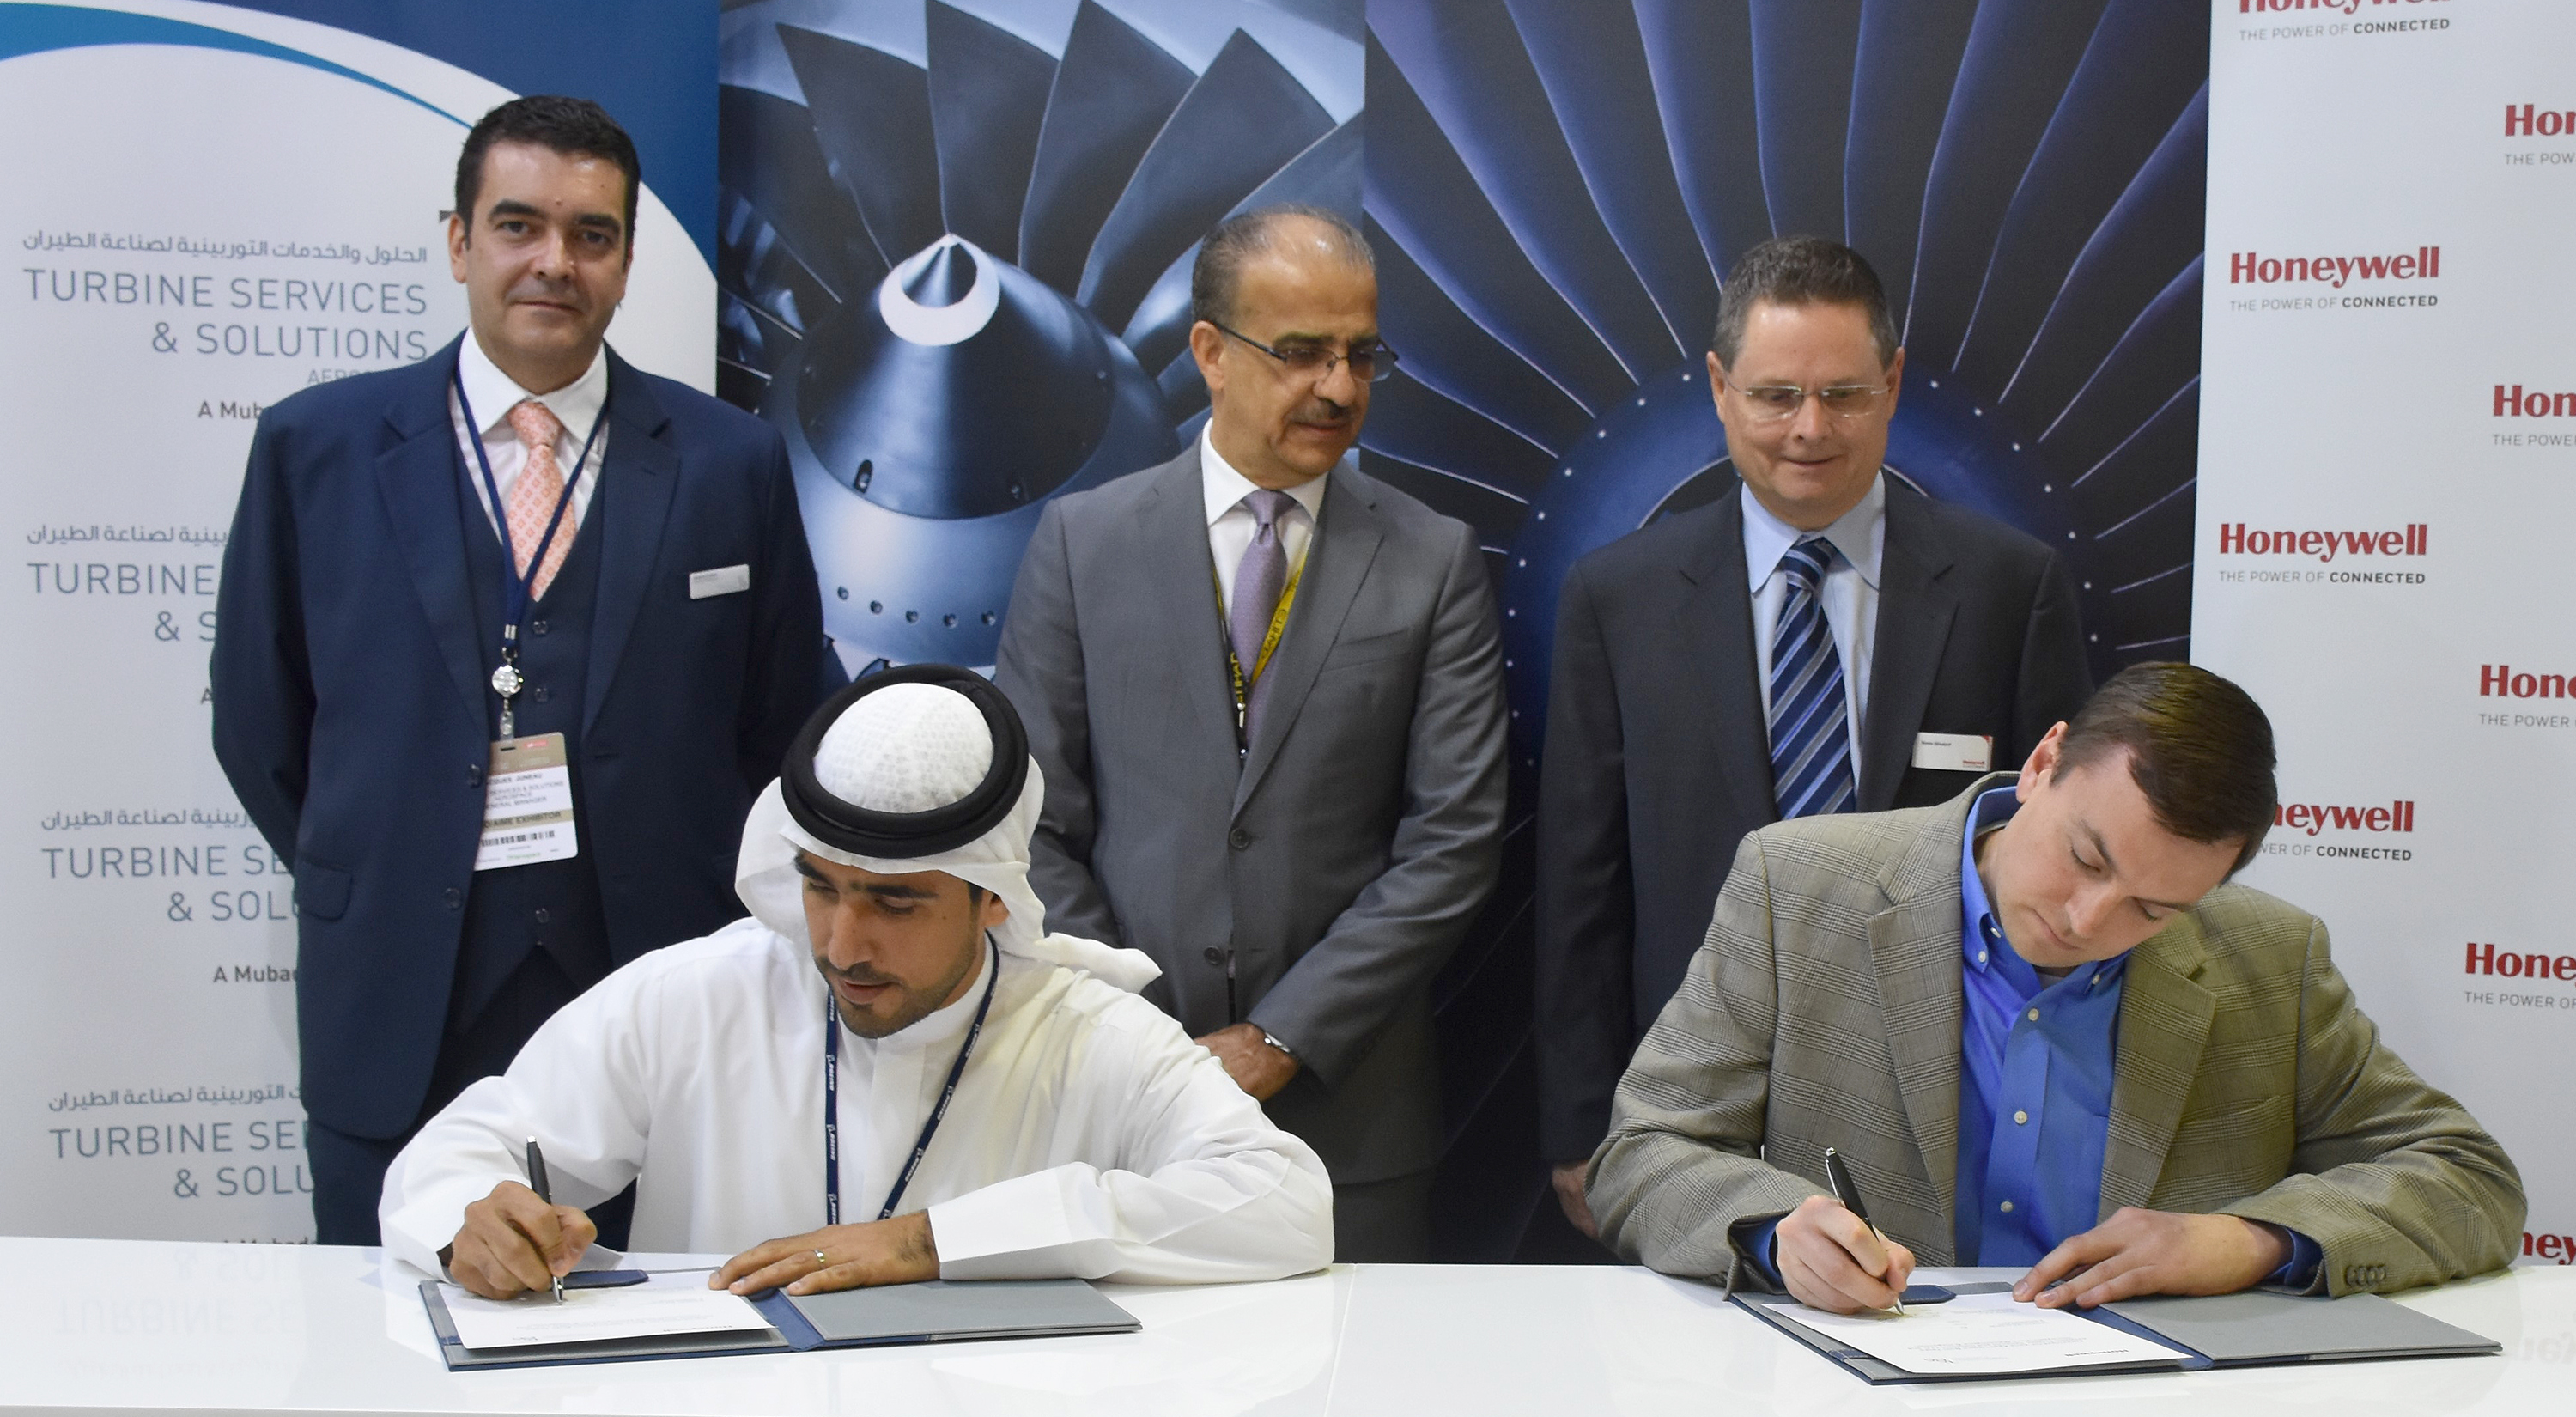 Mubadala's Turbine Services Solutions to use Honeywell's Maintenance voice system